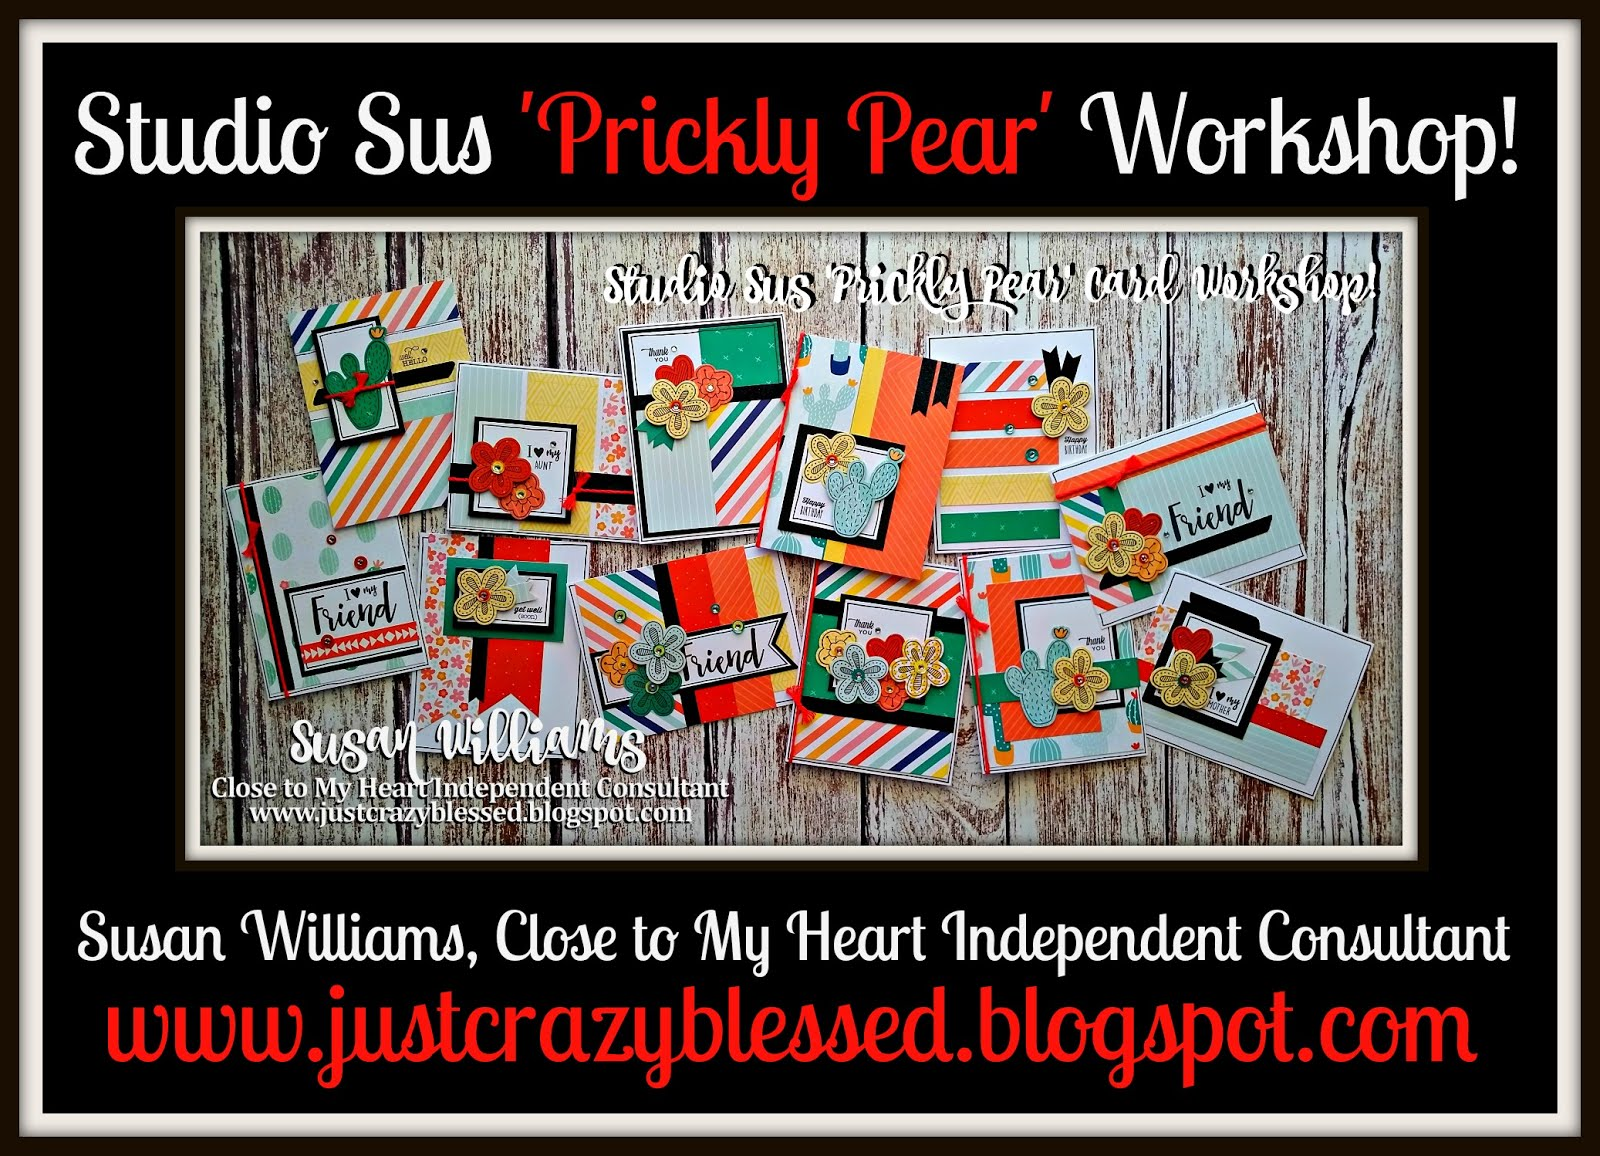 'Prickly Pear' Cardmaking Workshop!